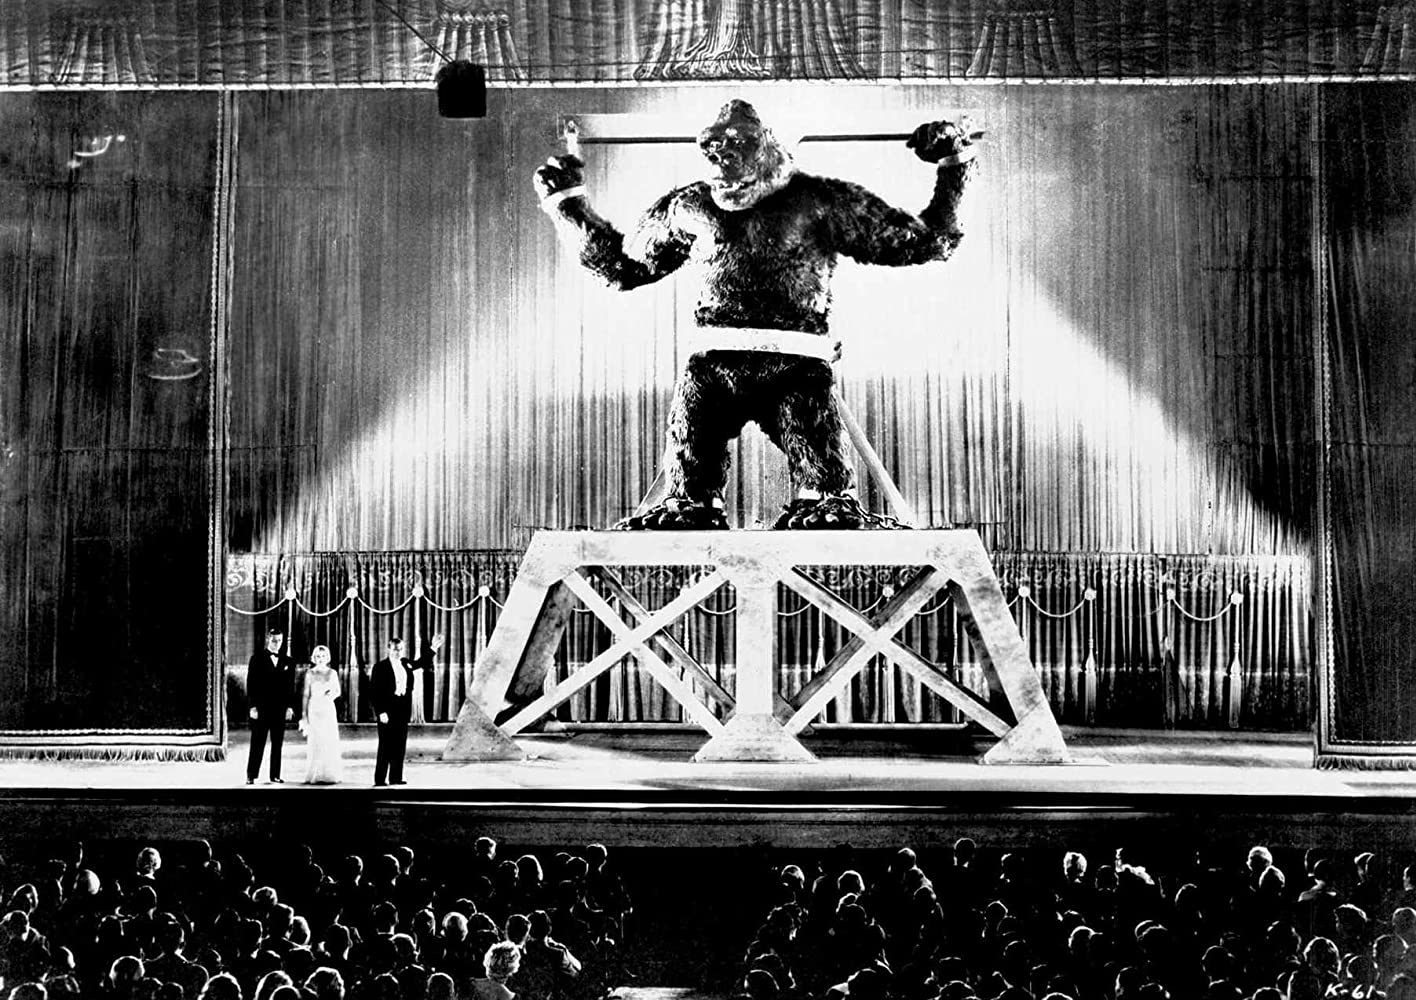 Robert Armstrong, Bruce Cabot, Fay Wray, and King Kong in King Kong (1933)